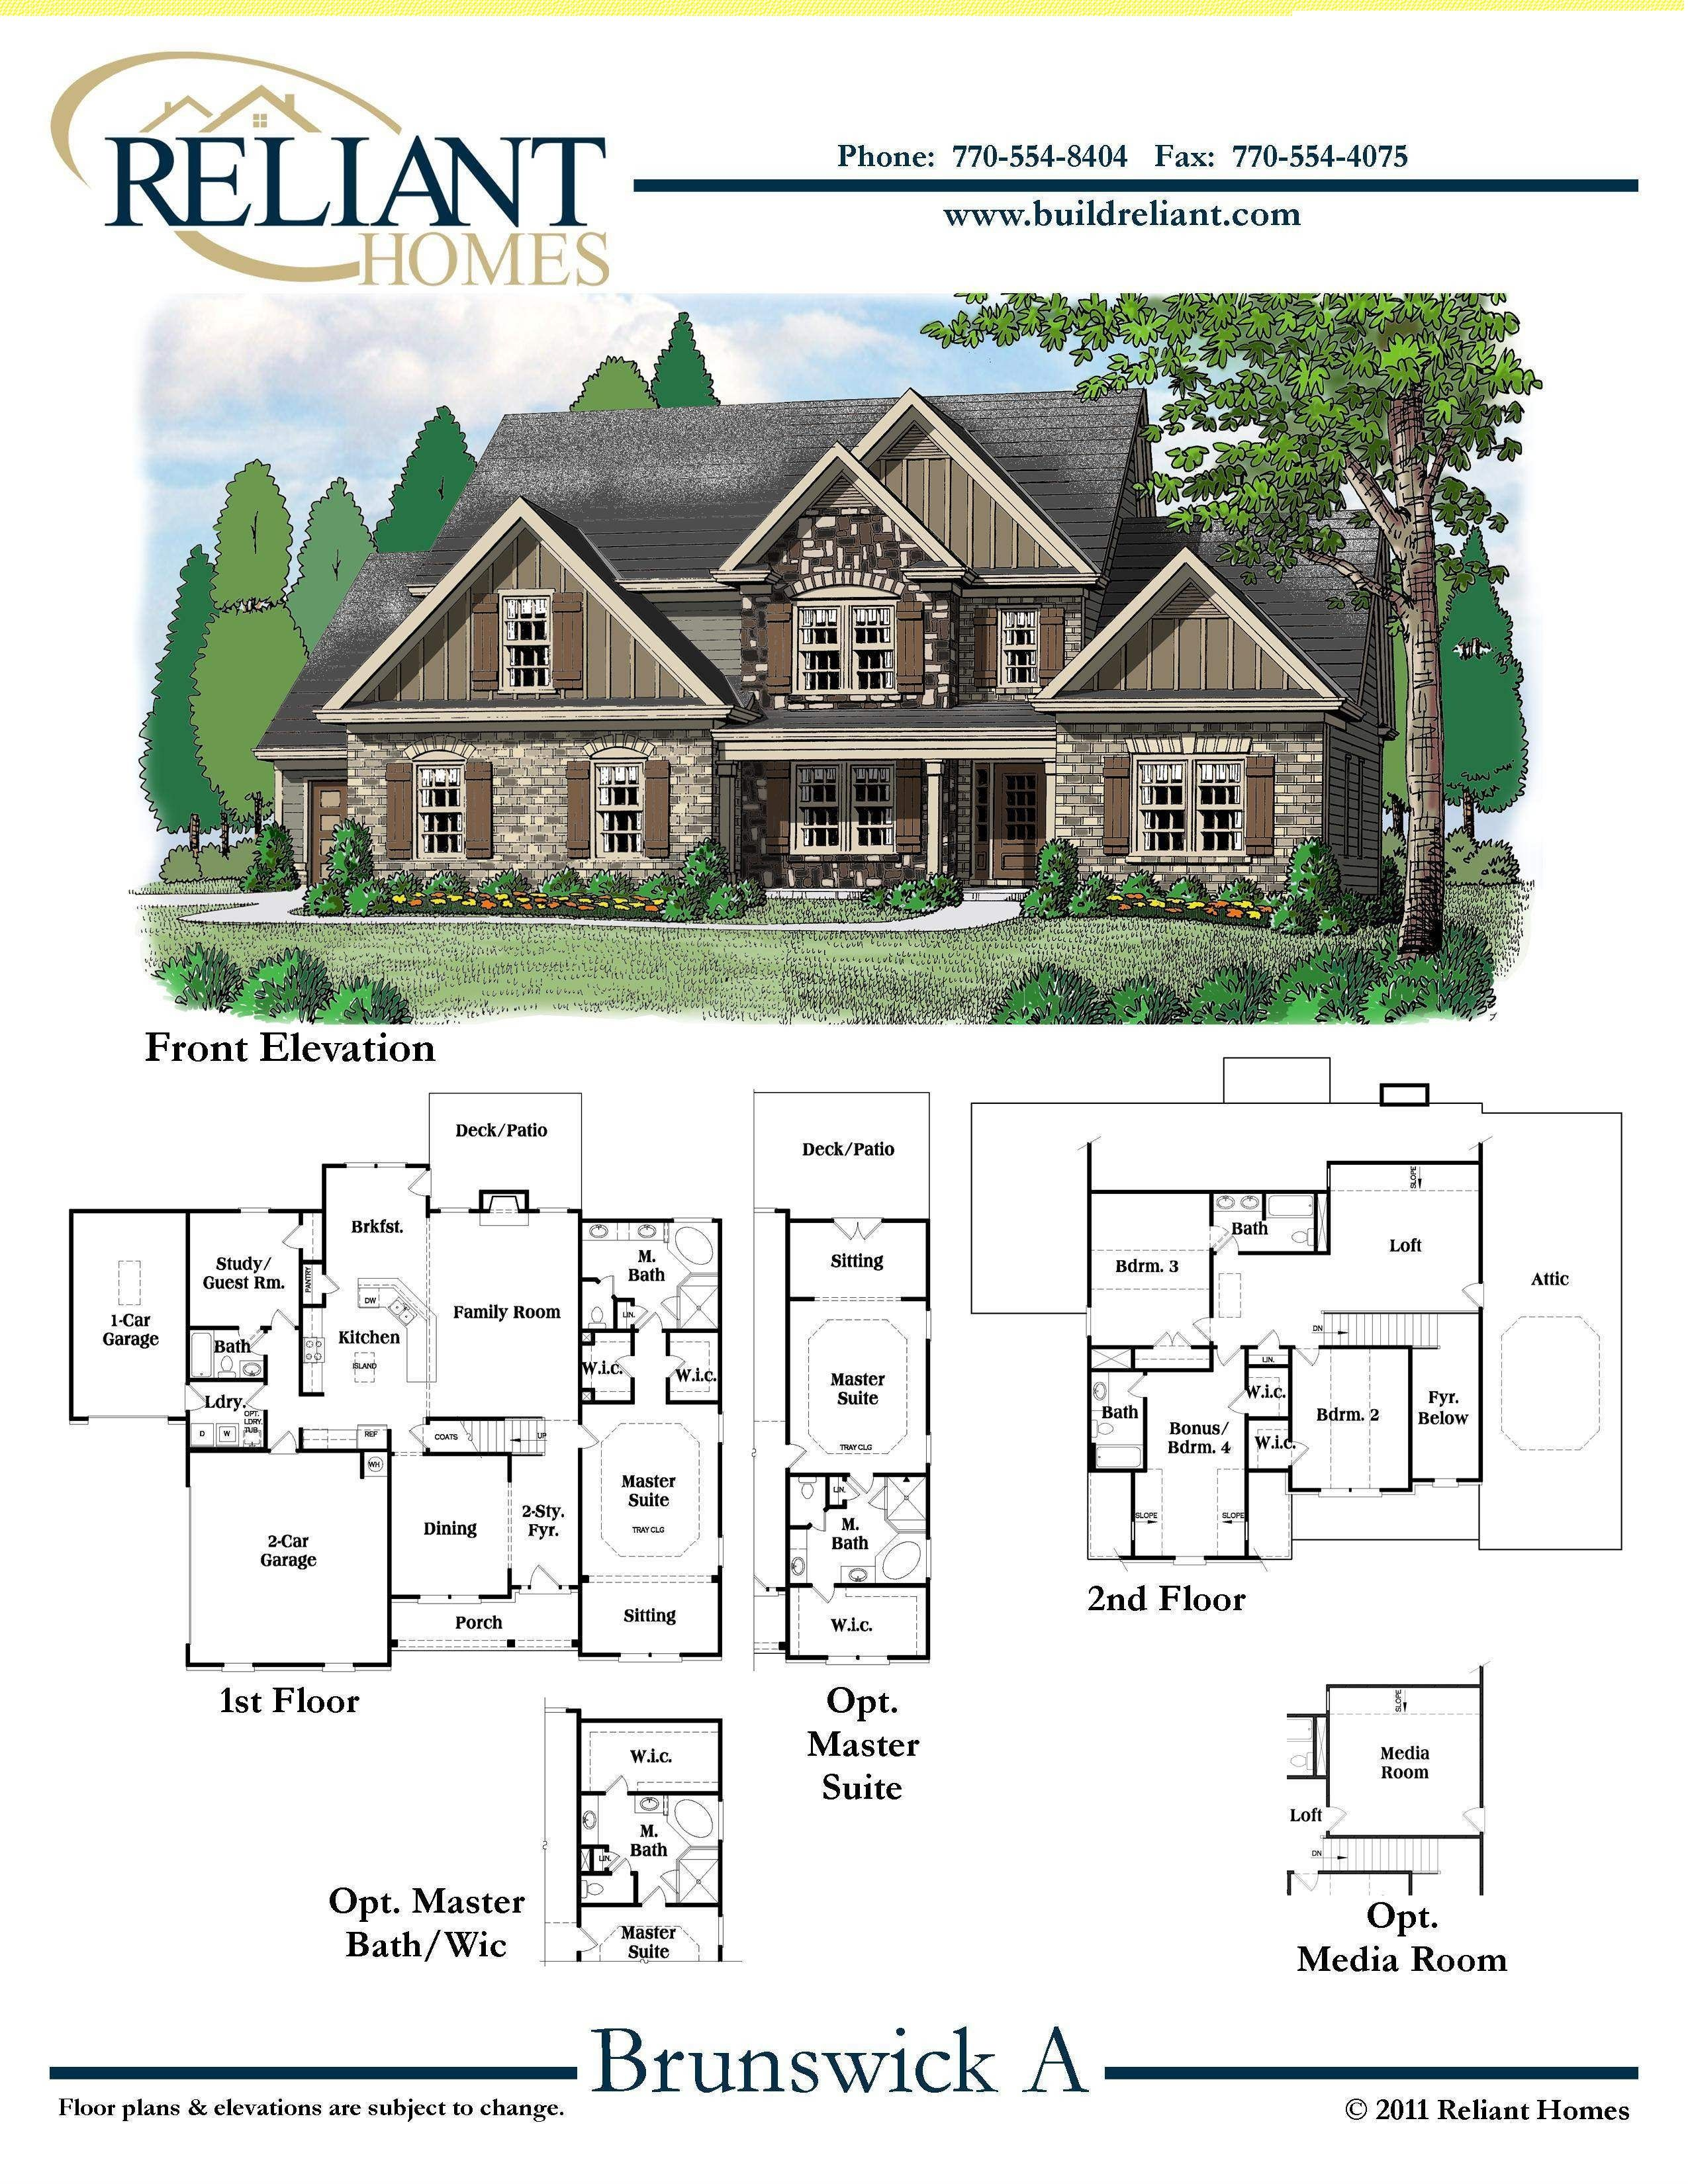 reliant homes the brunswick plan floor plans homes homes